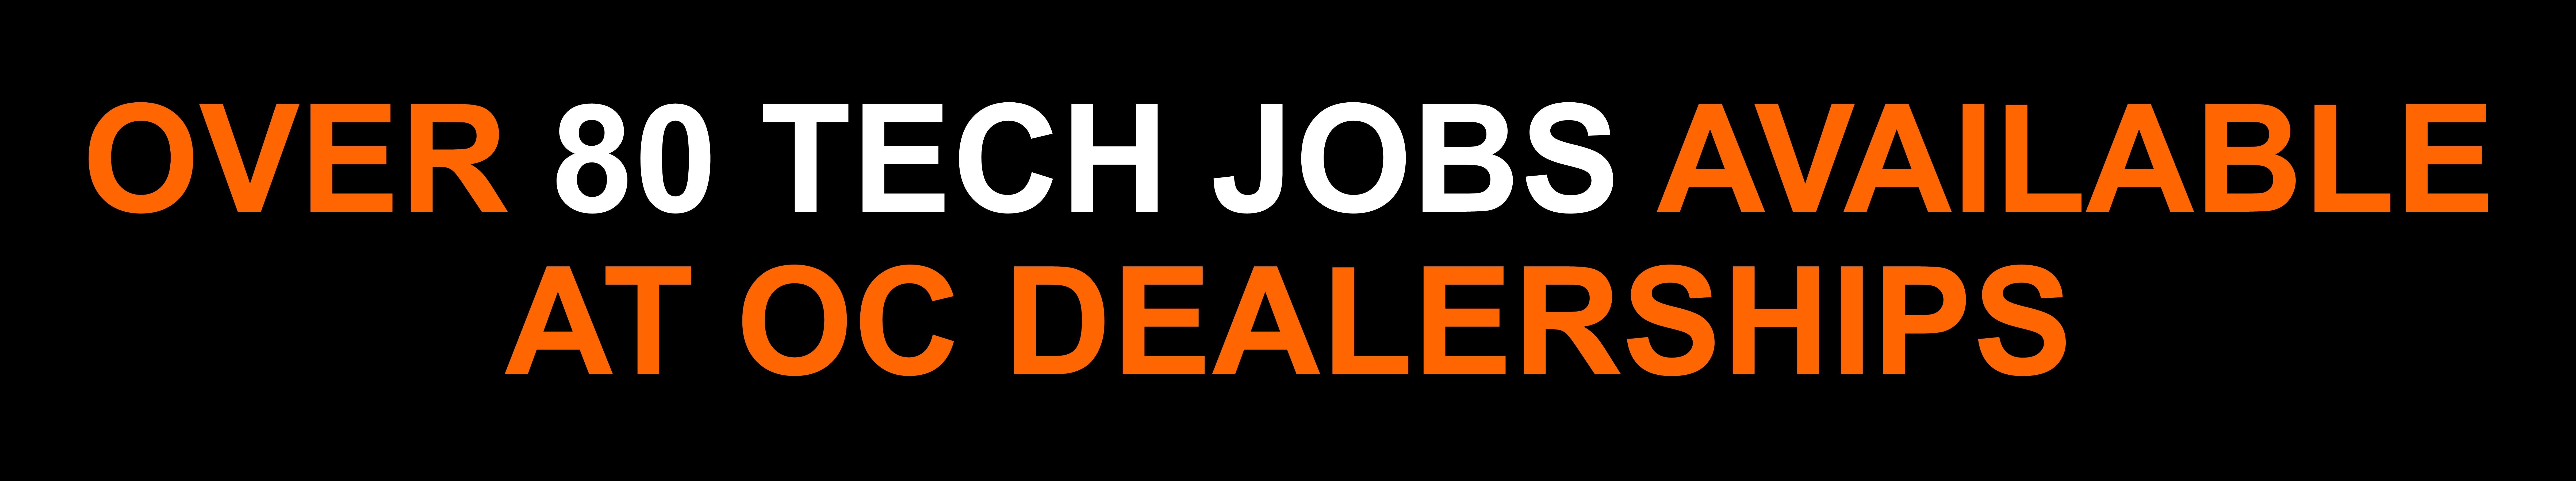 Automotive Technician Jobs at Orange County Dealerships